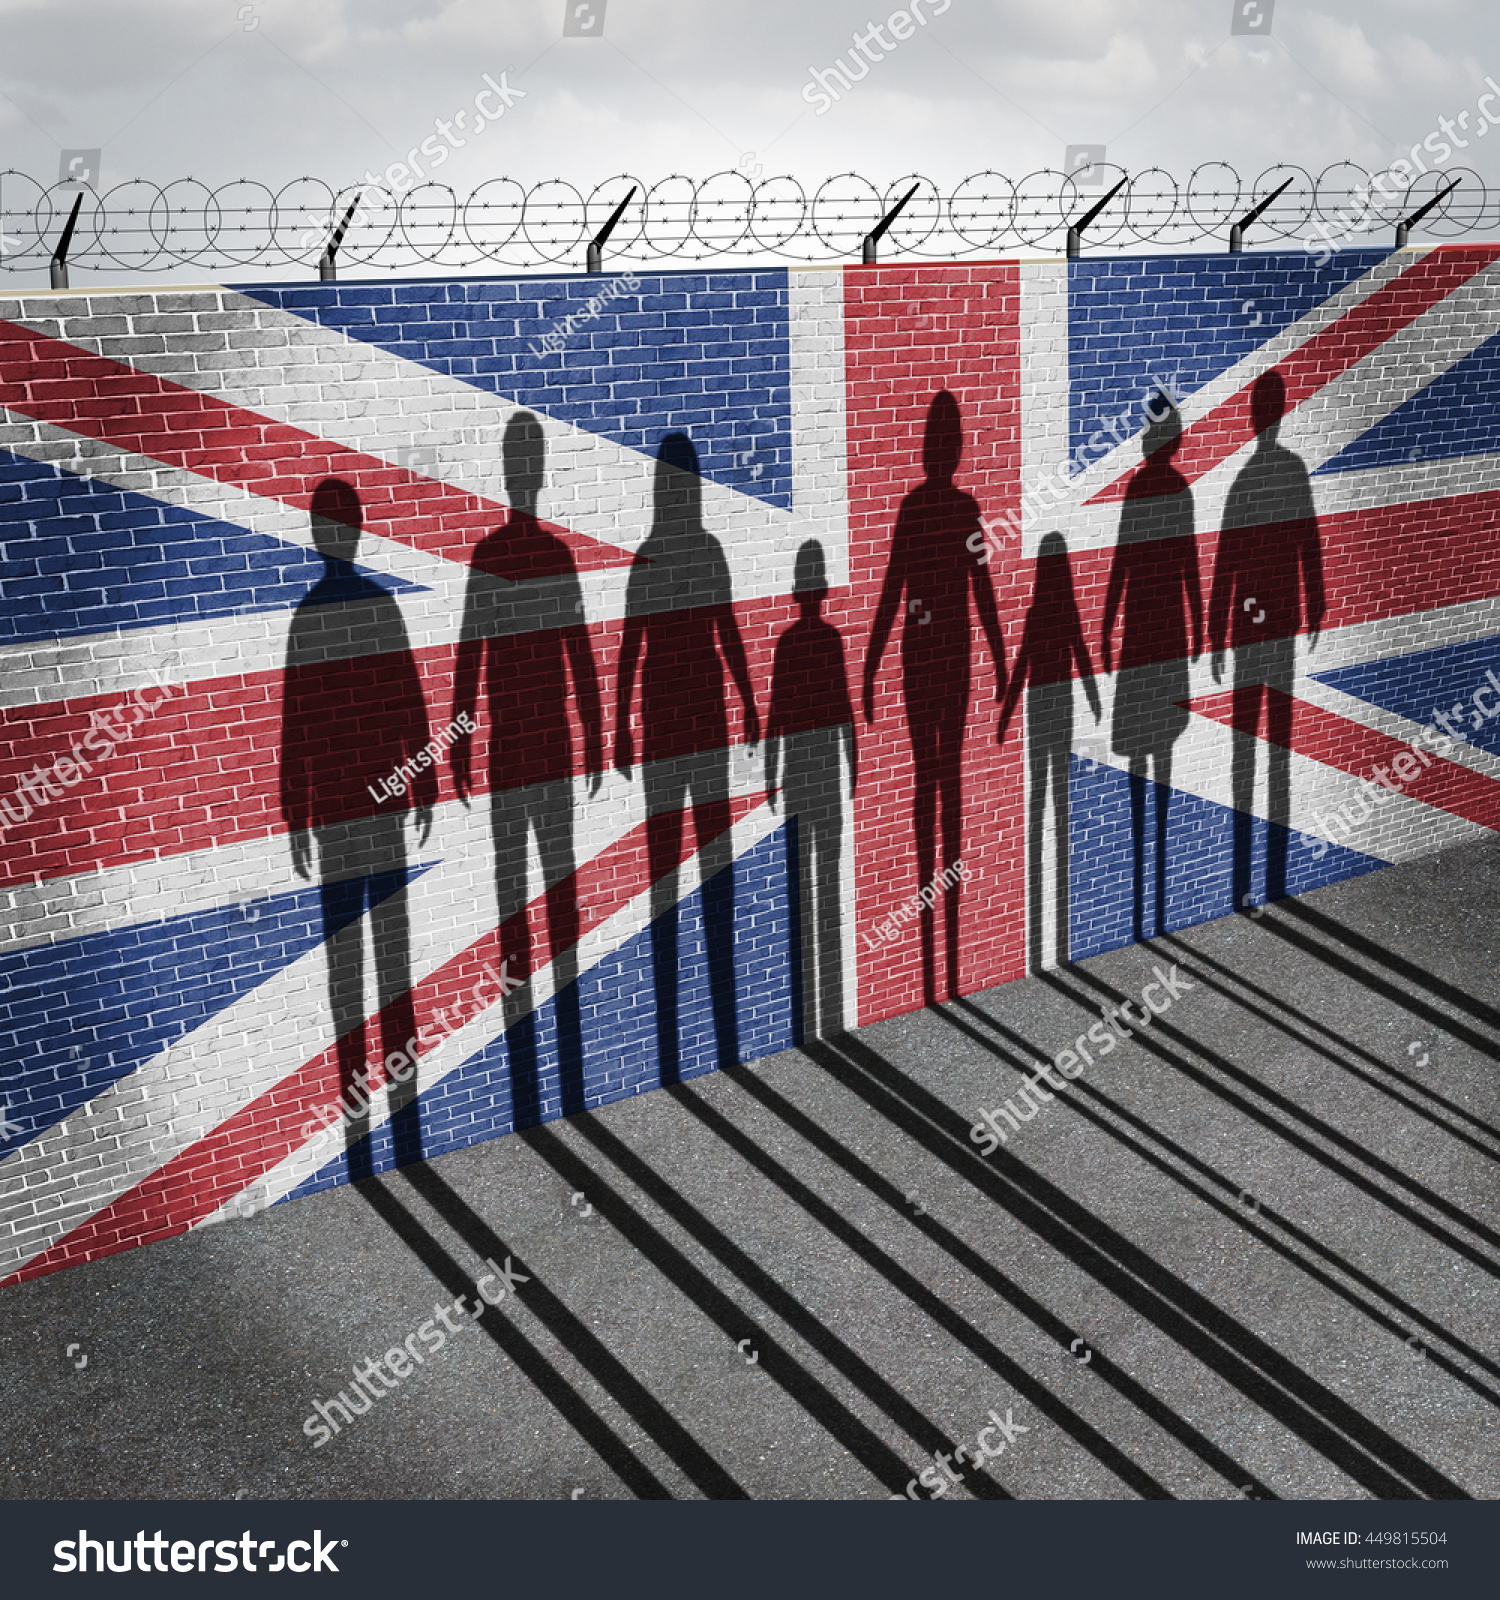 britain immigration refugee crisis concept people stock